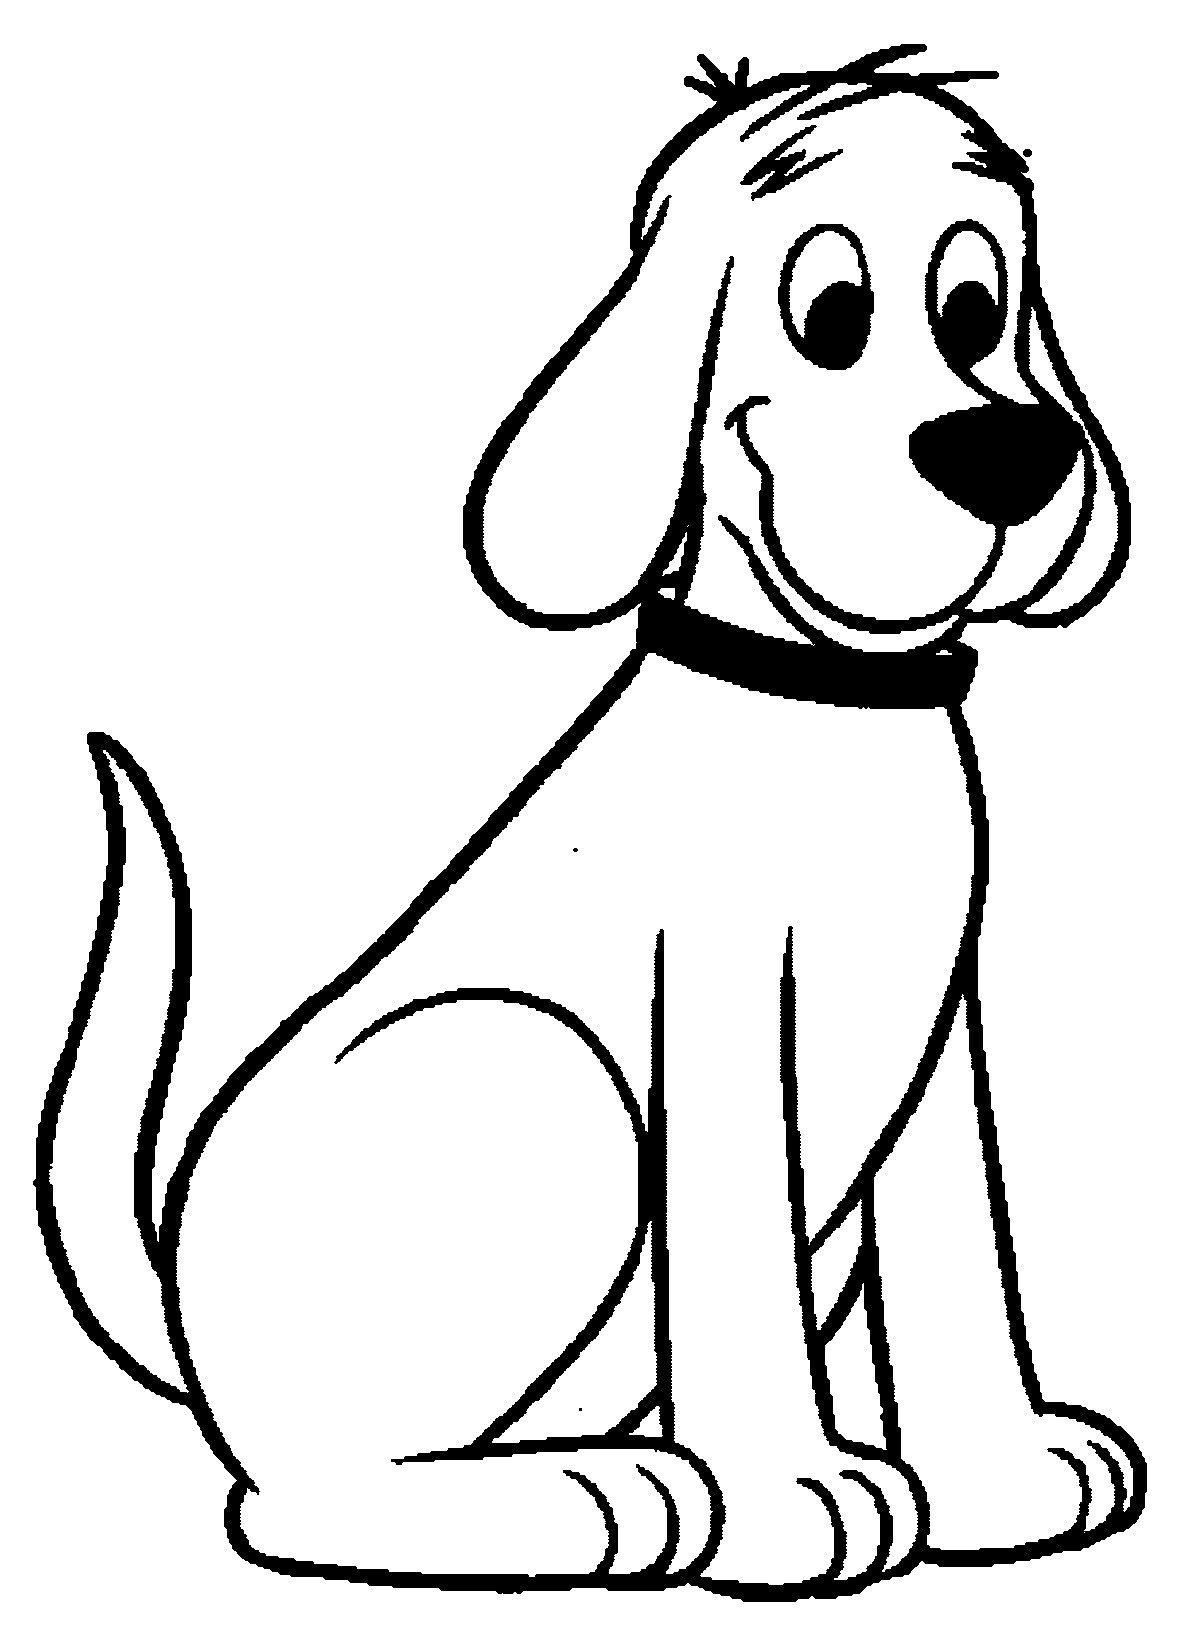 Sitting Dog Drawing   Free download on ClipArtMag